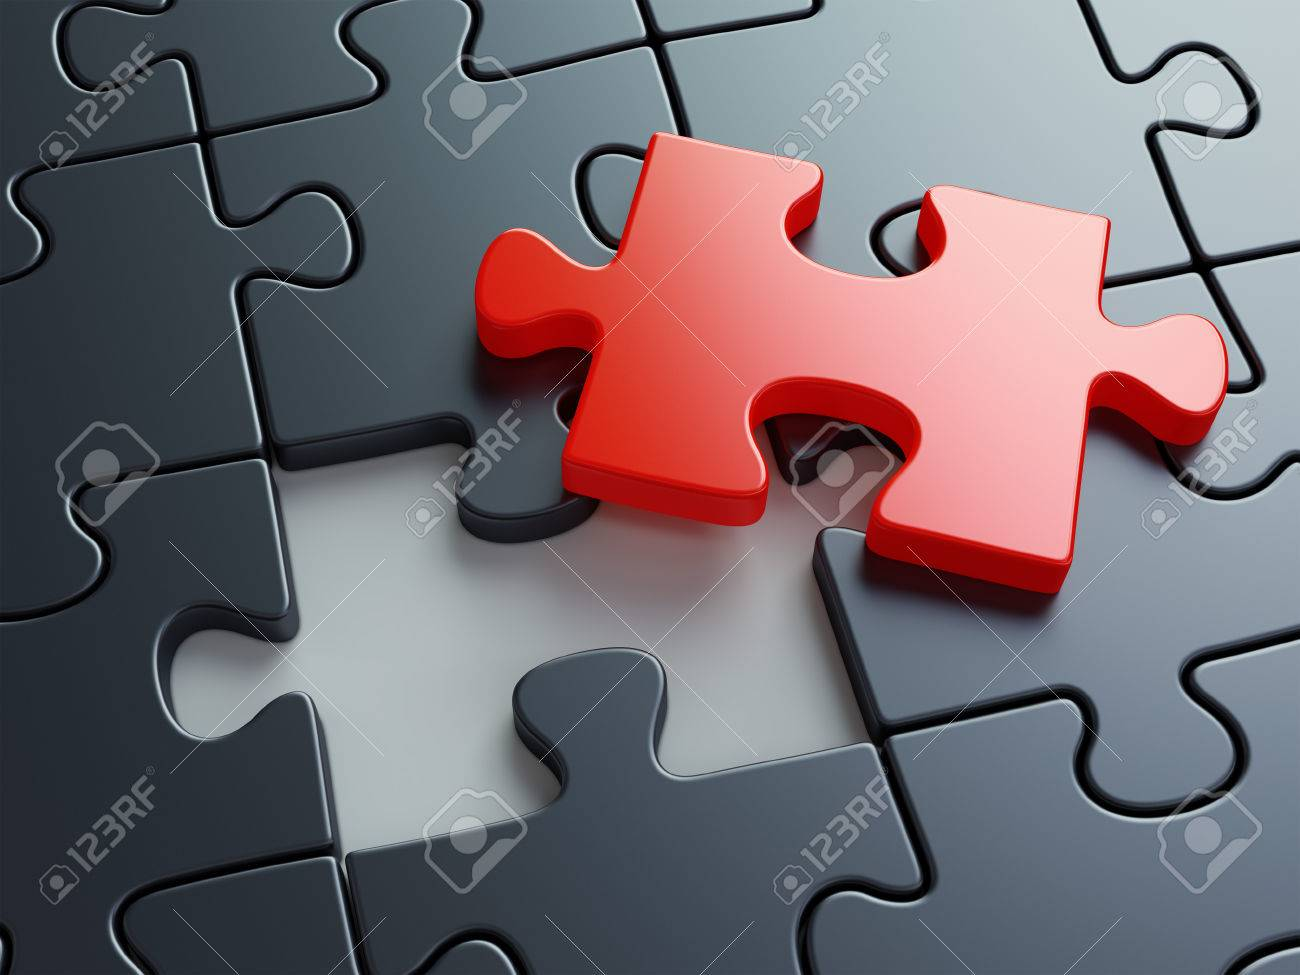 Missing puzzle piece. Business creativity teamwork and solution concept. 3D illustration - 69437847